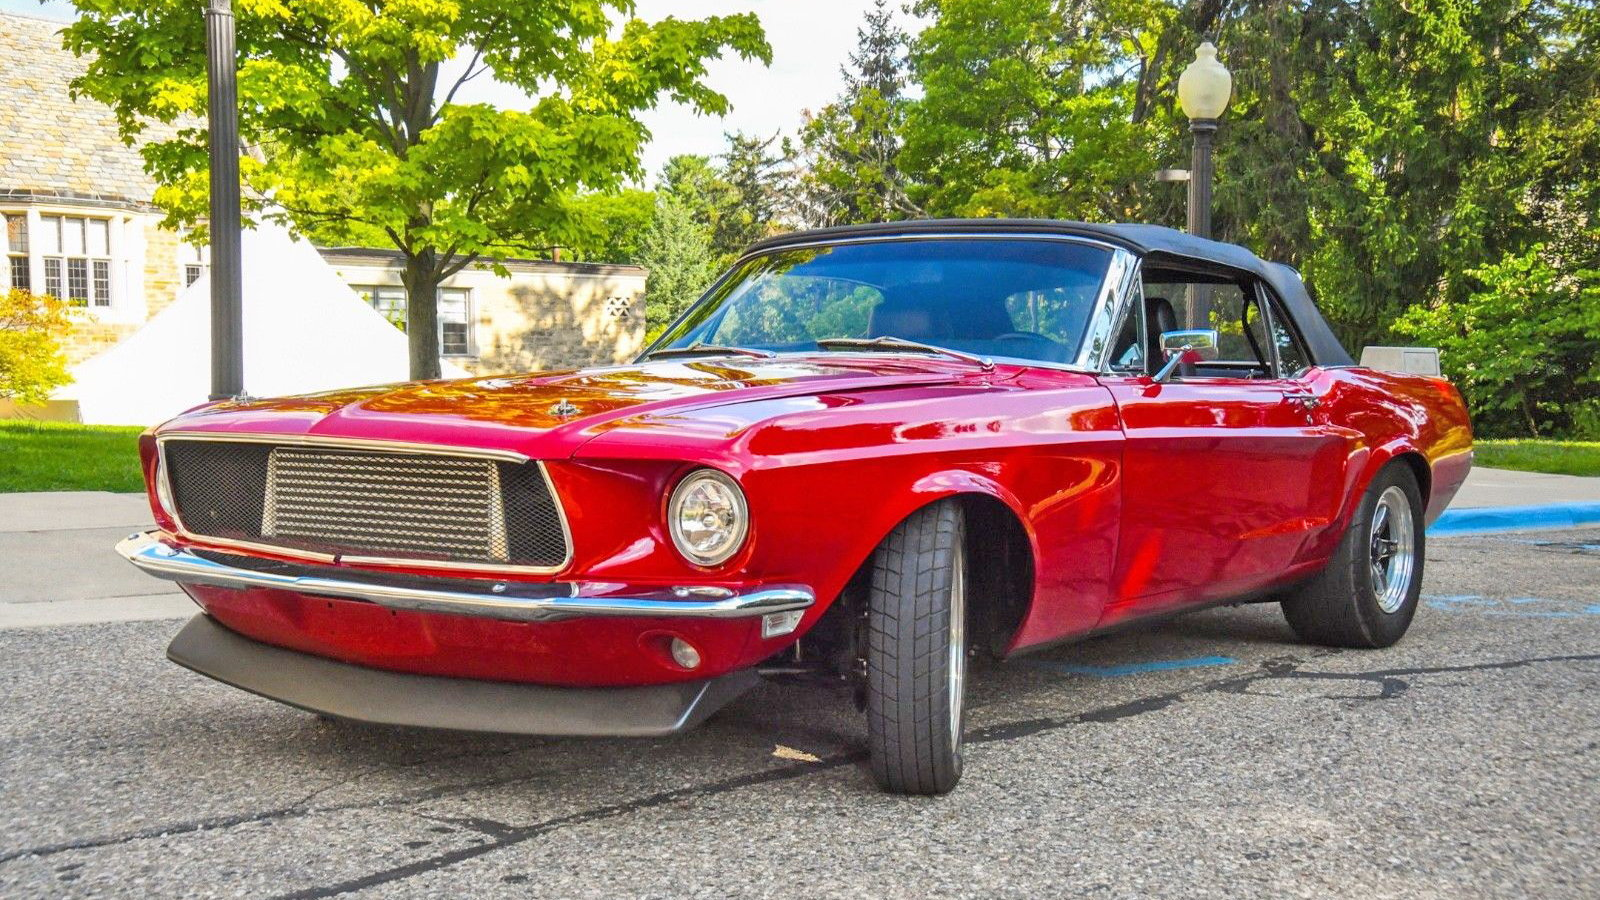 1968 Mustang Convertible Makes 730HP with 2JZ Swap